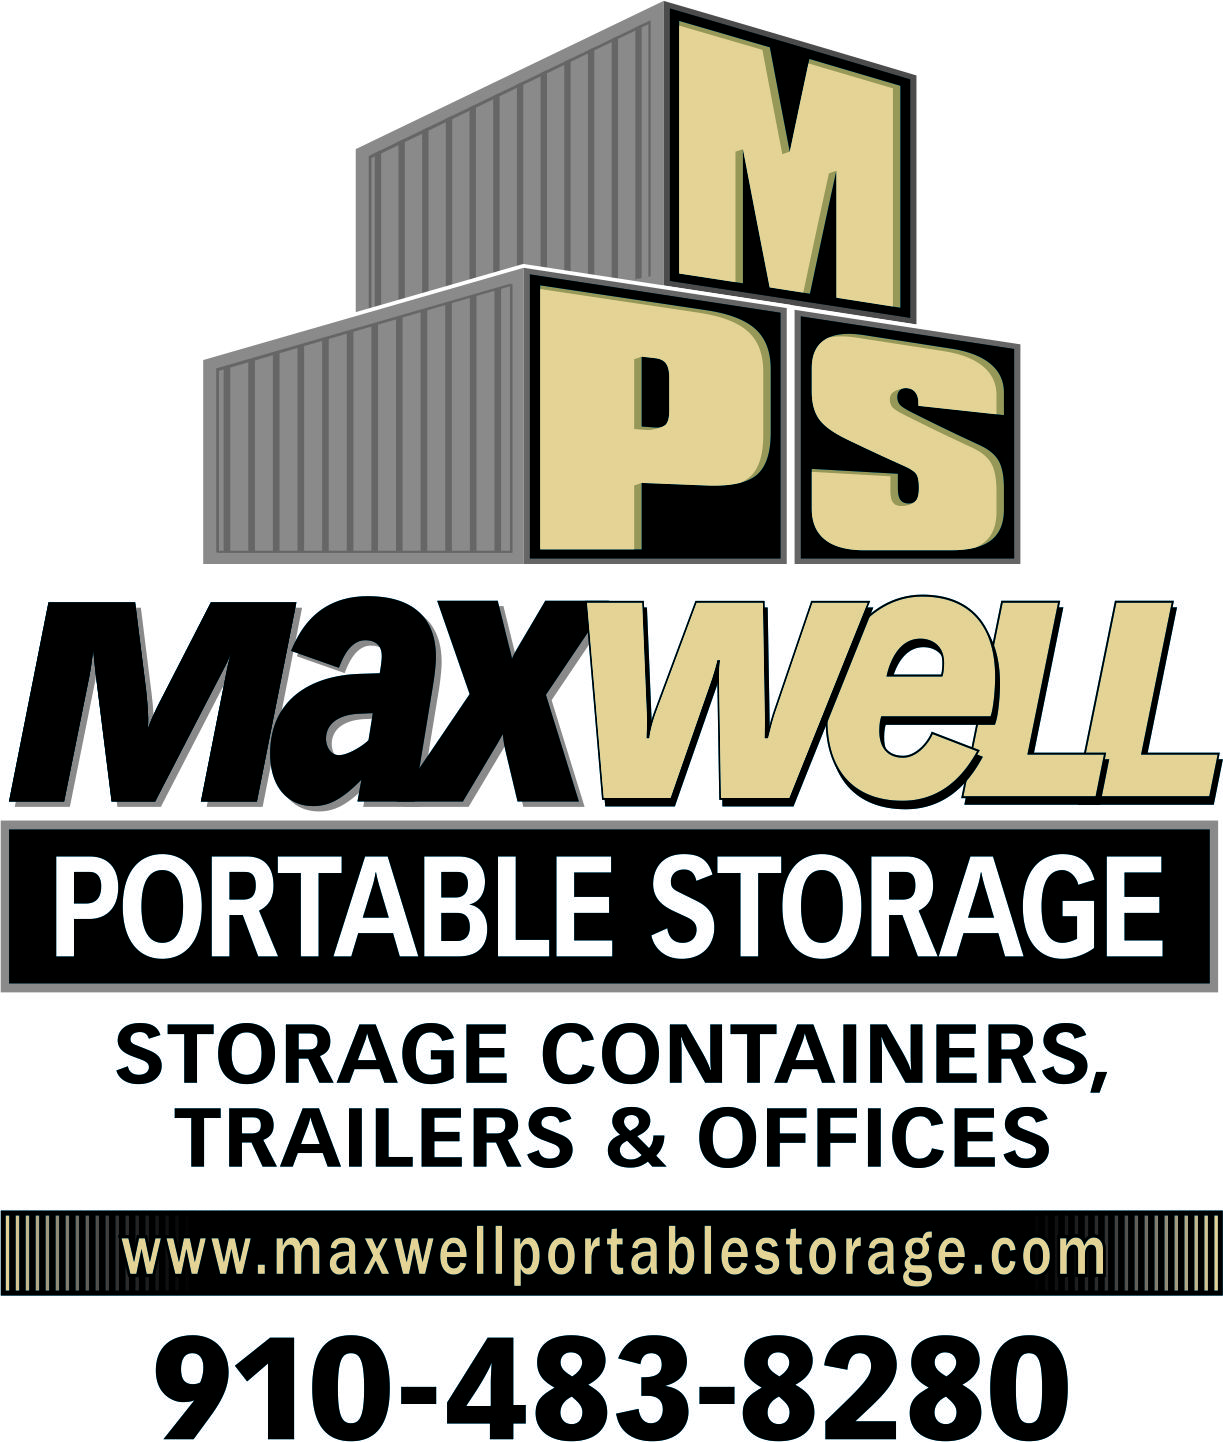 Maxwell Portable Storage